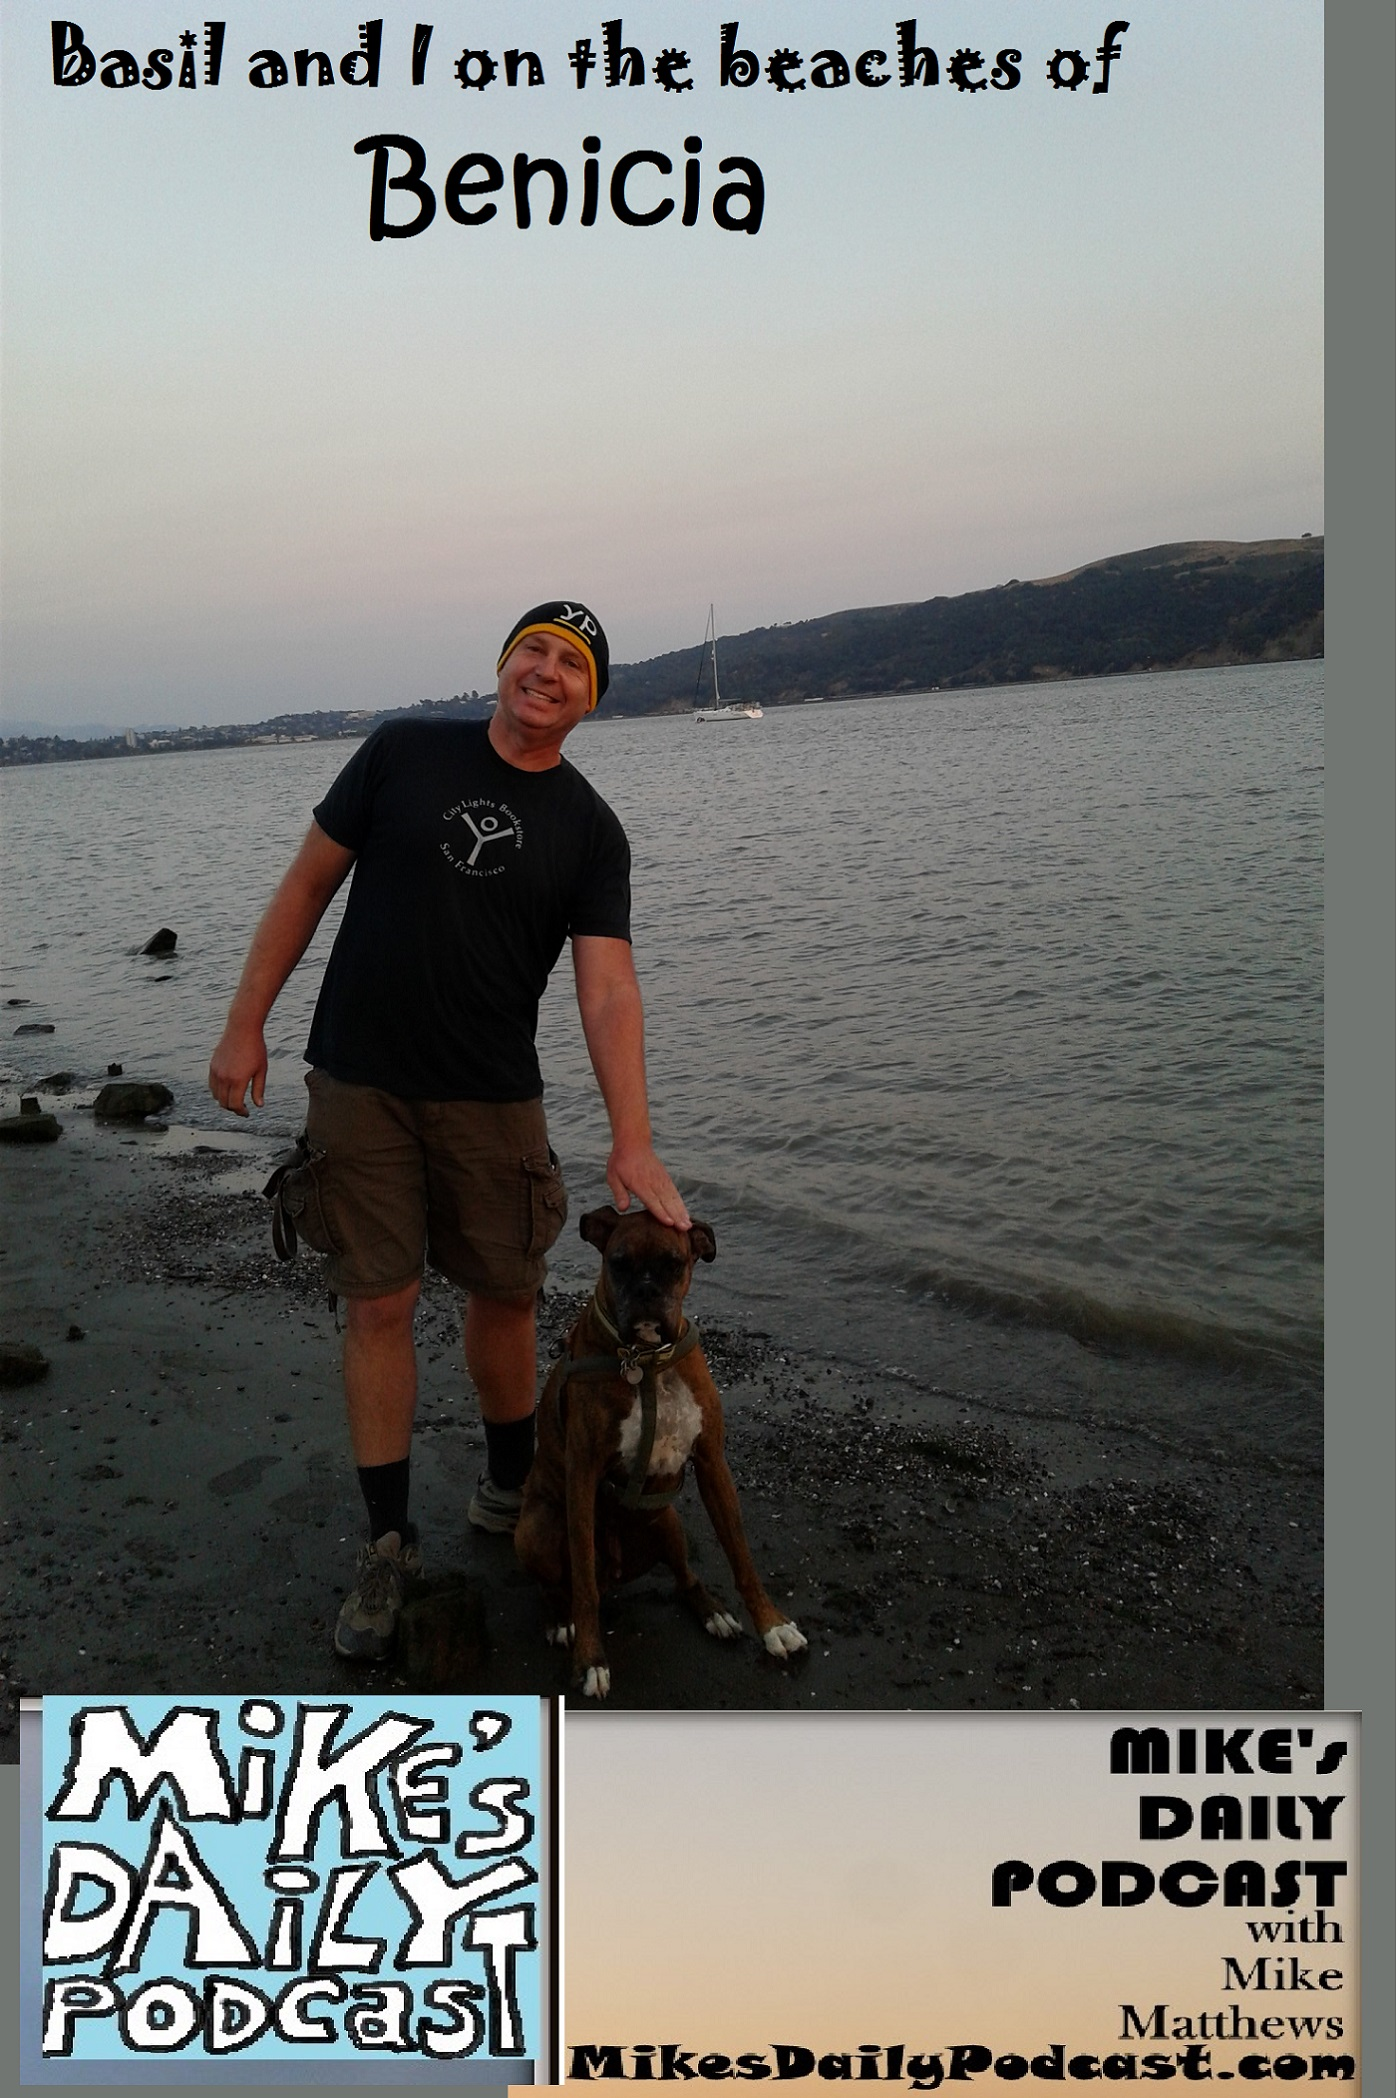 mikes-daily-podcast-1199-downtown-benicia-beach